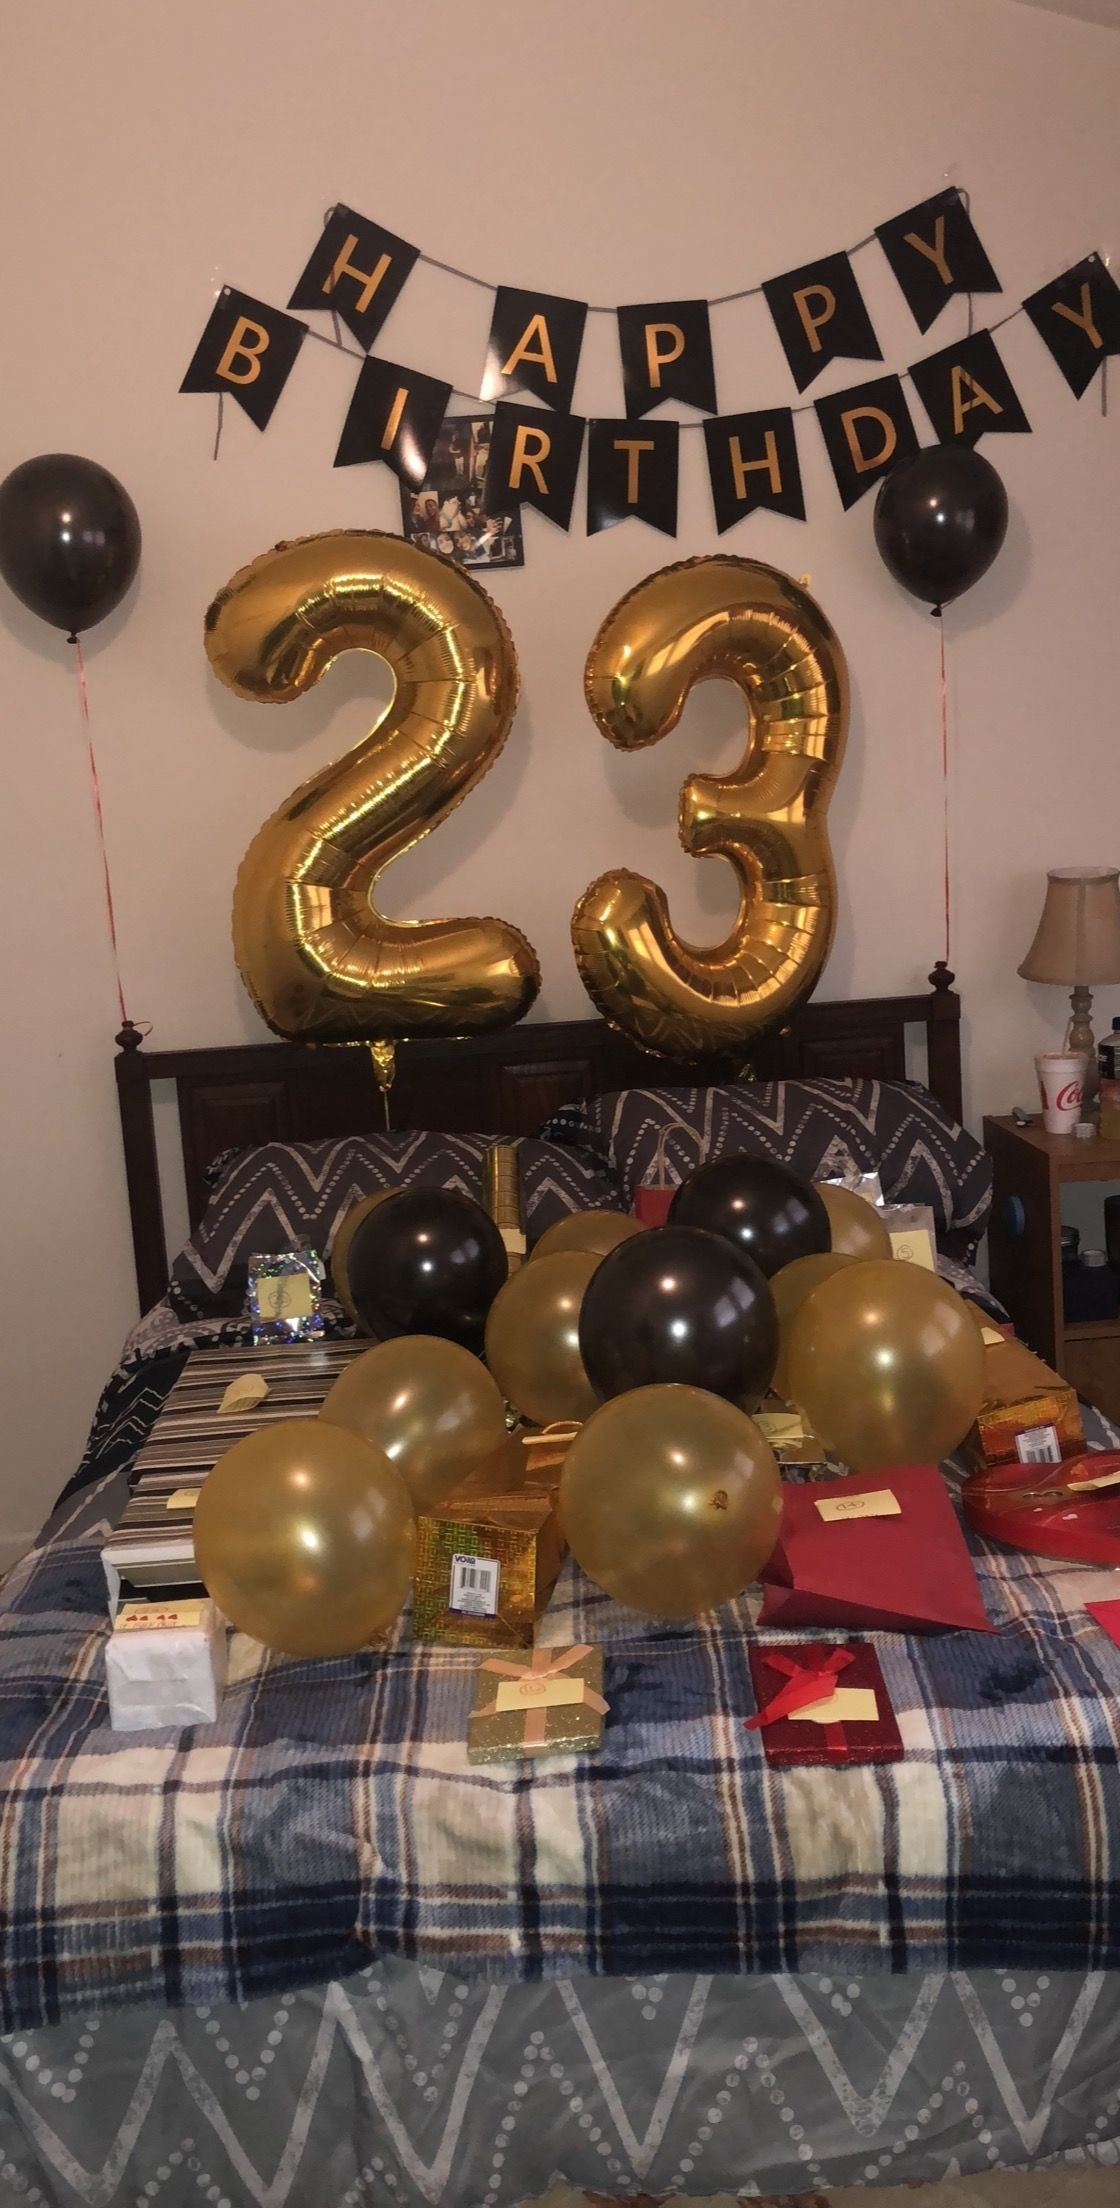 23Rd Birthday For Boyfriend 23 Gifts With A Note On Each Gift intended for 23Rd Birthday Ideas 36567